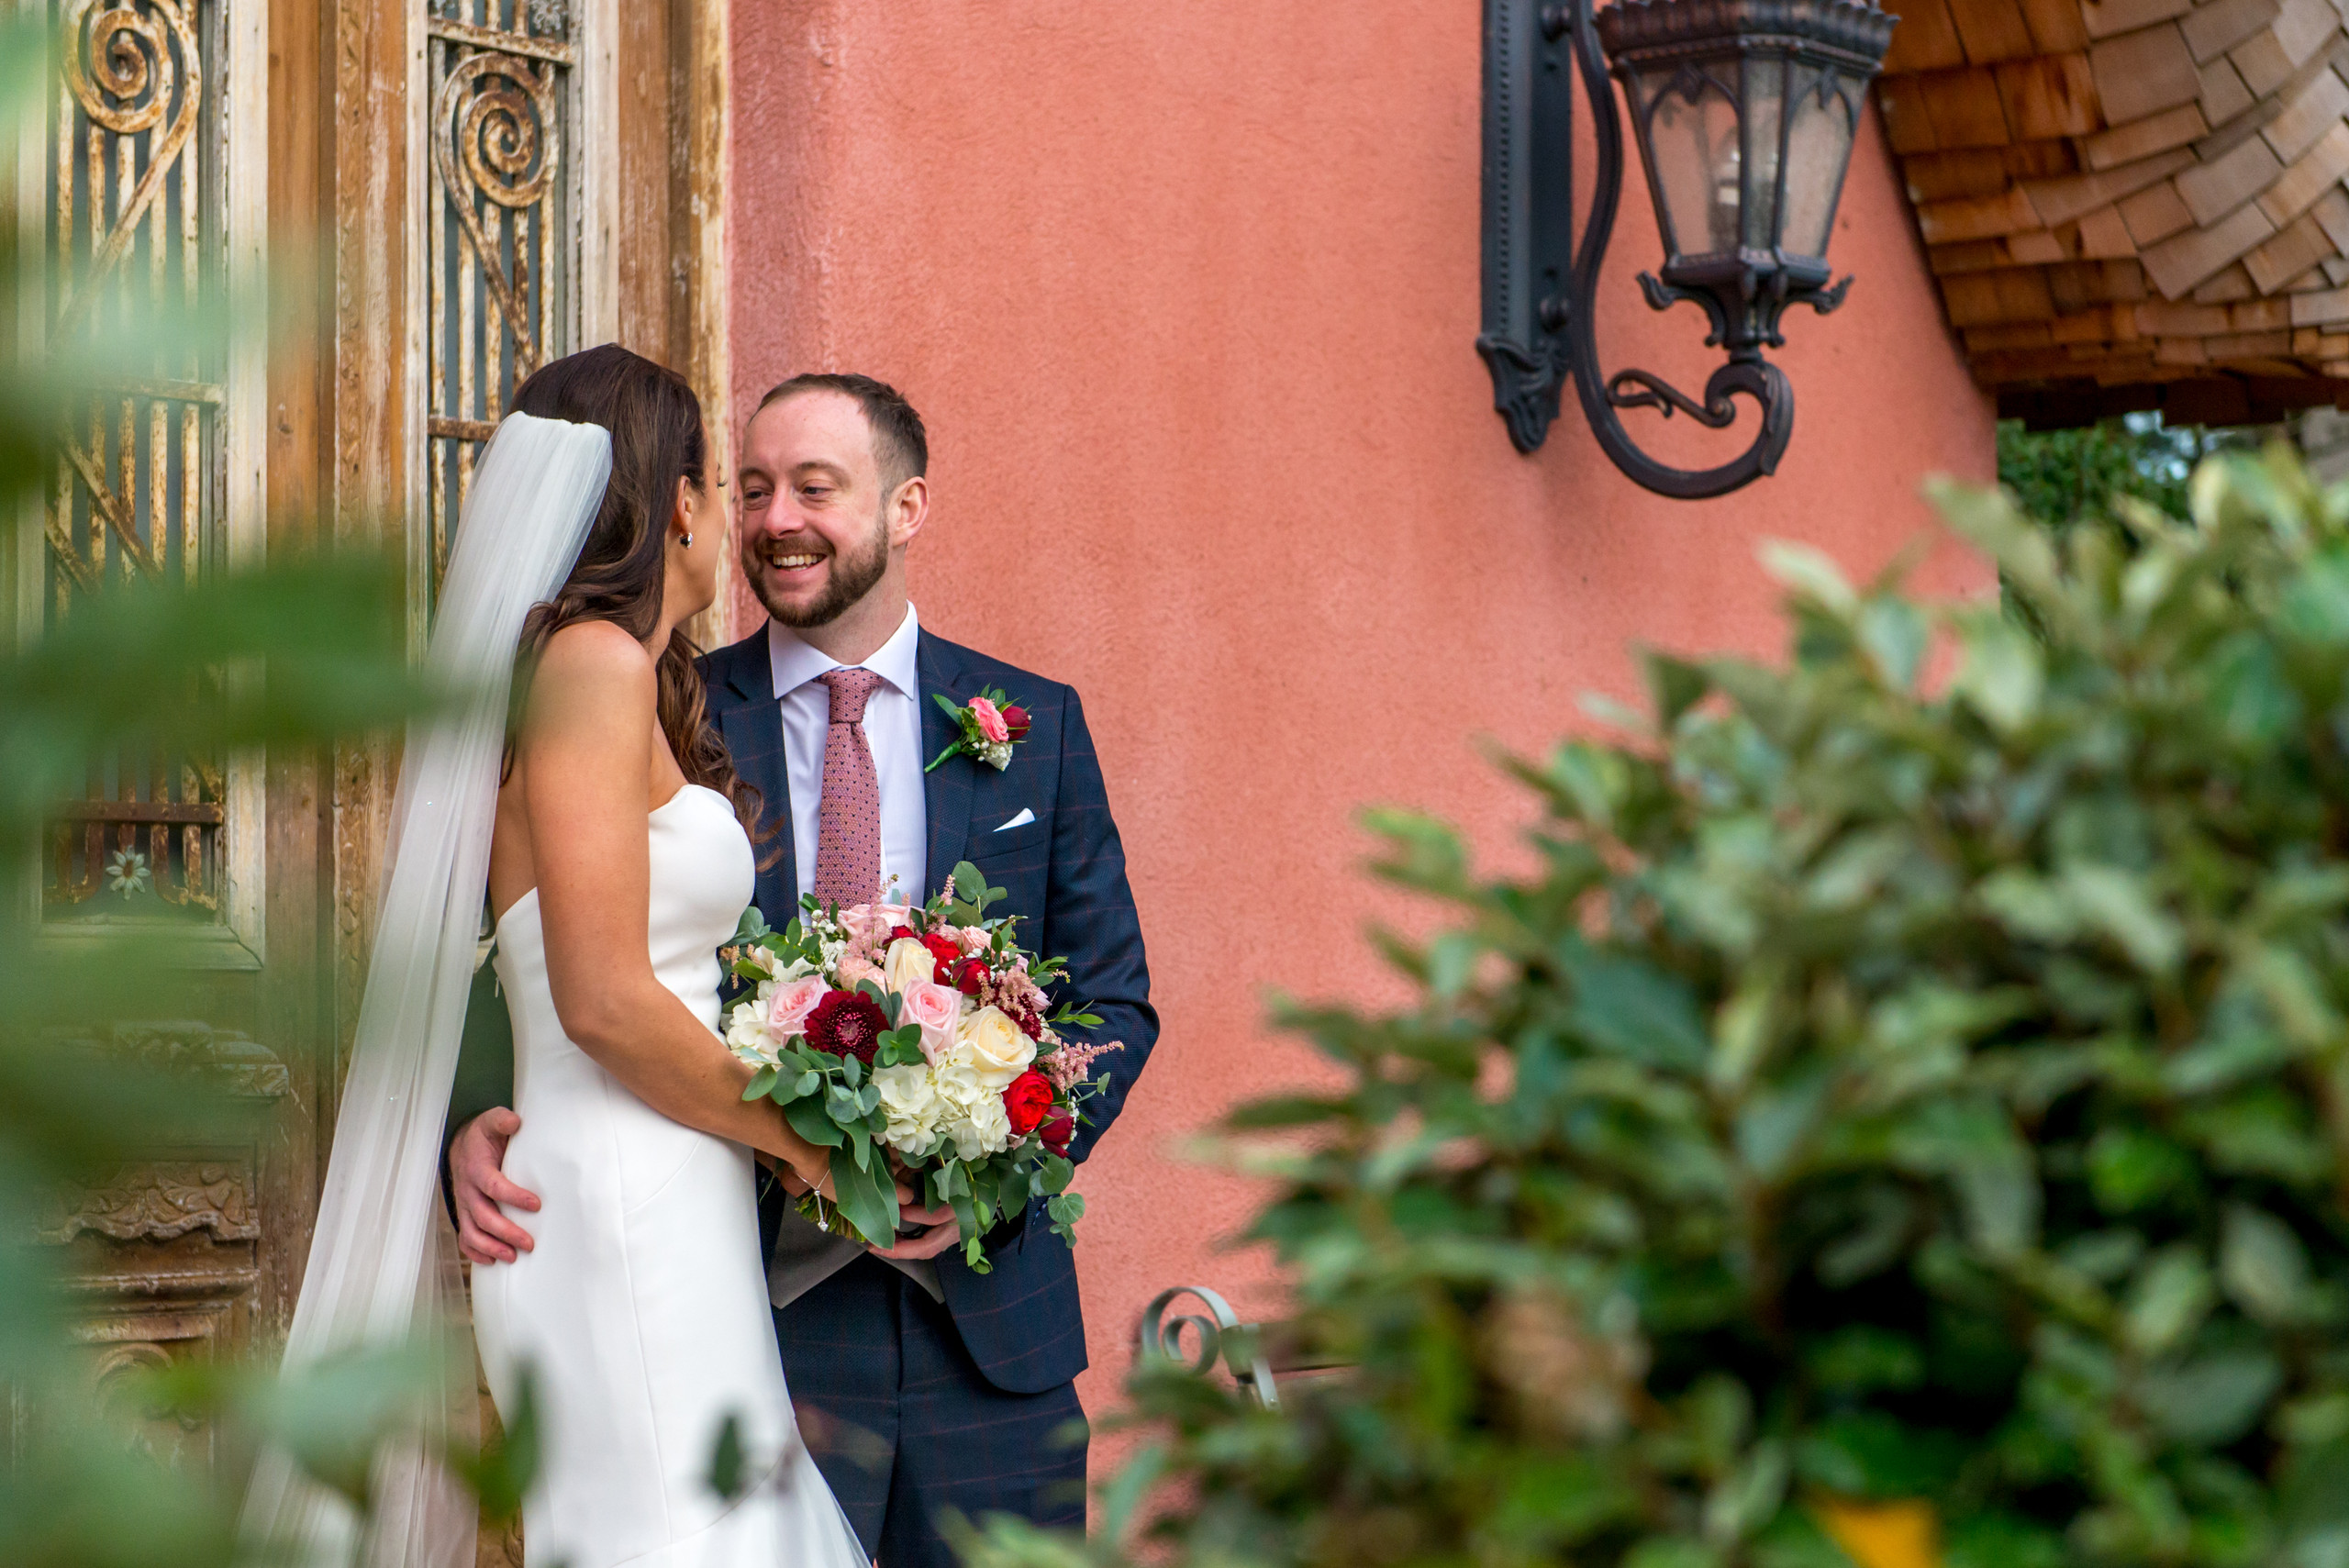 Candid, rRelaxed photograph of groom smiling at bride on wedding day at Le Petit Chateau in Otterburn, Northumberland